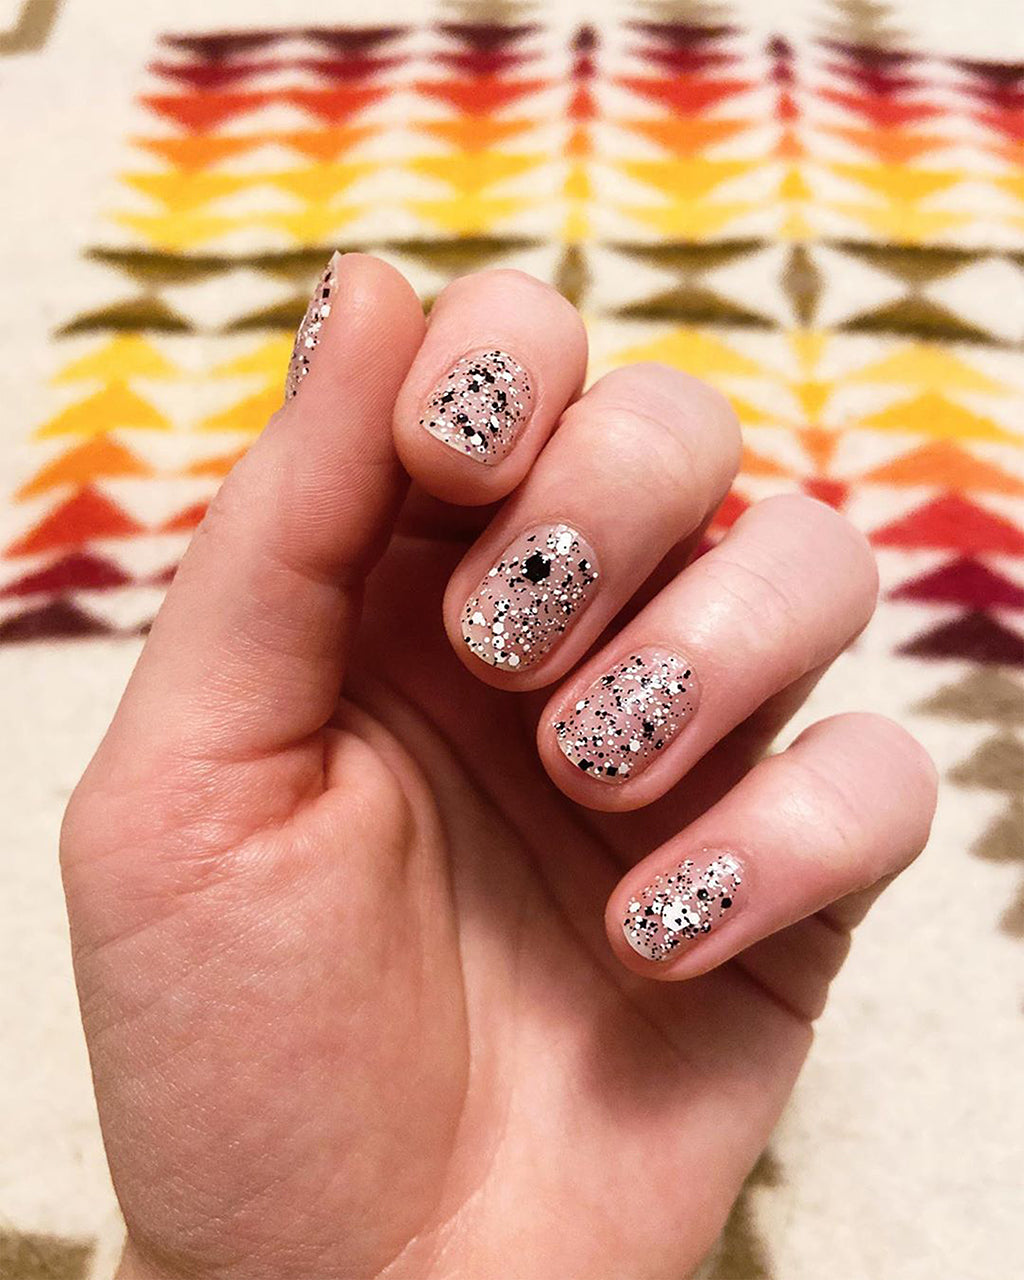 cookies and cream nail polish shown on model hands